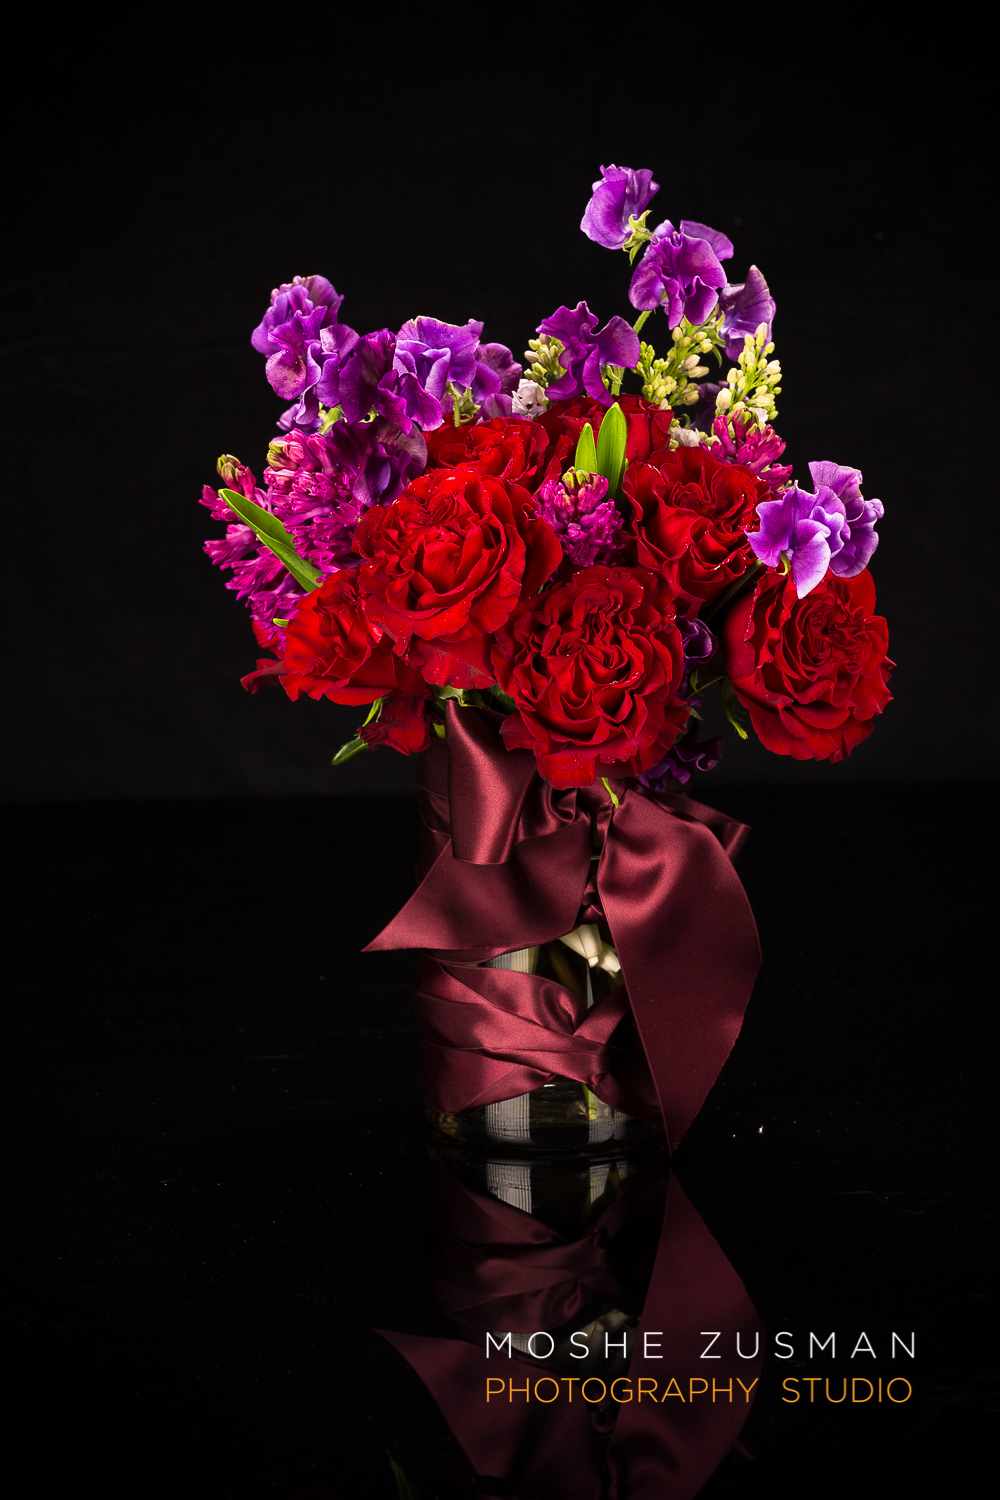 May_Flowers_Reston_Moshe_Zusman_Photography_Valentines_Flowers-02.jpg